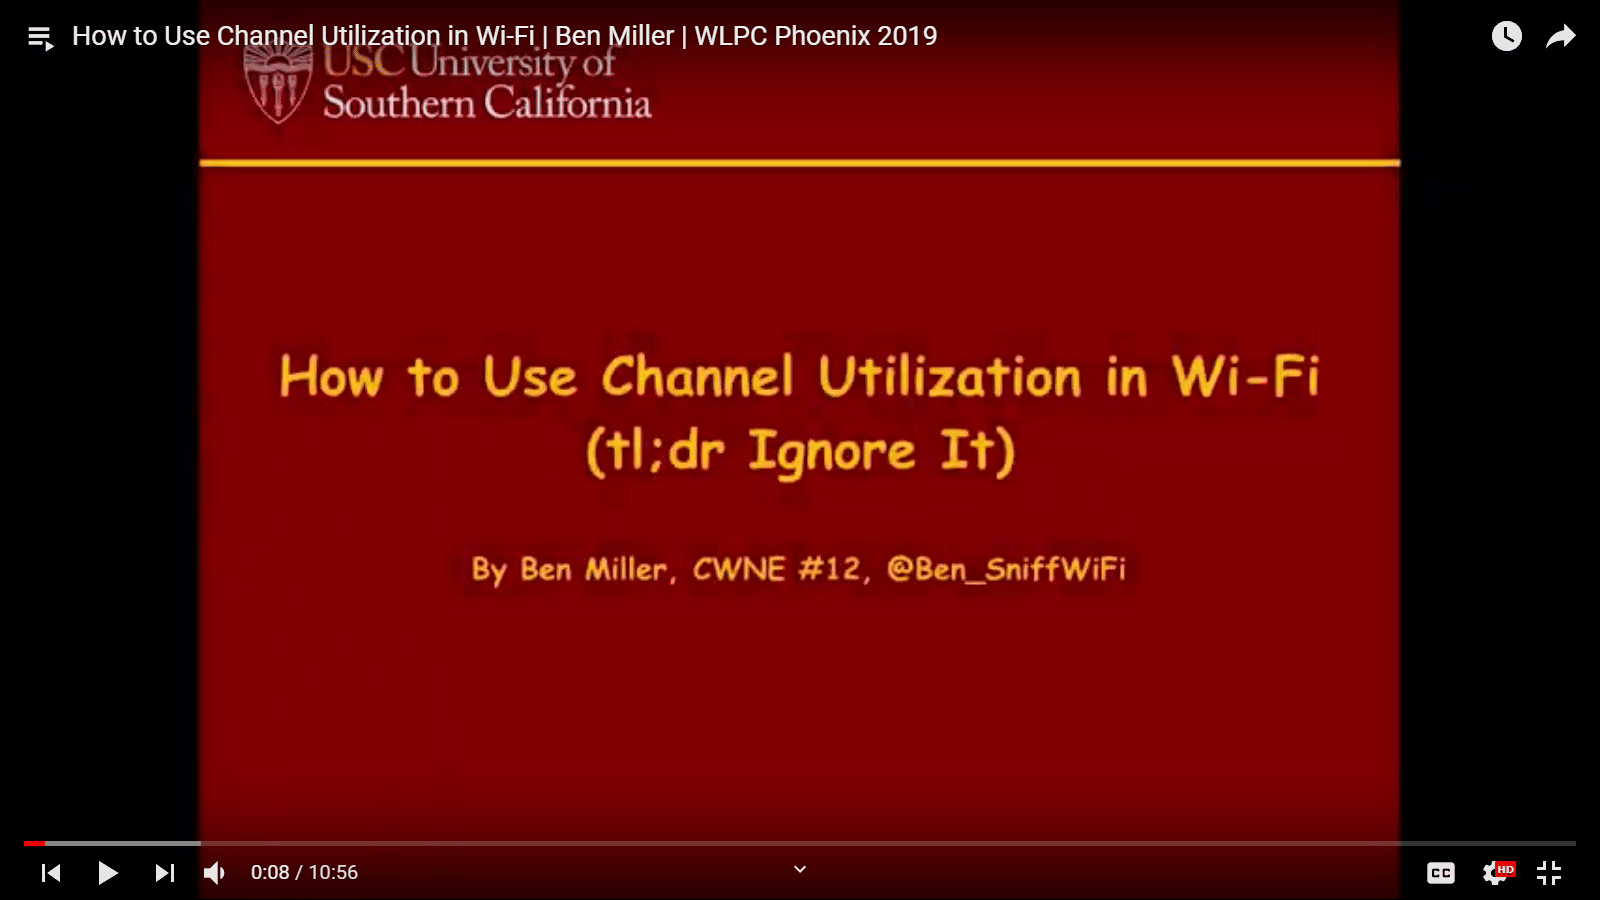 How to Use Channel Utilization in Wi-Fi | Ben Miller | WLPC Phoenix 2019